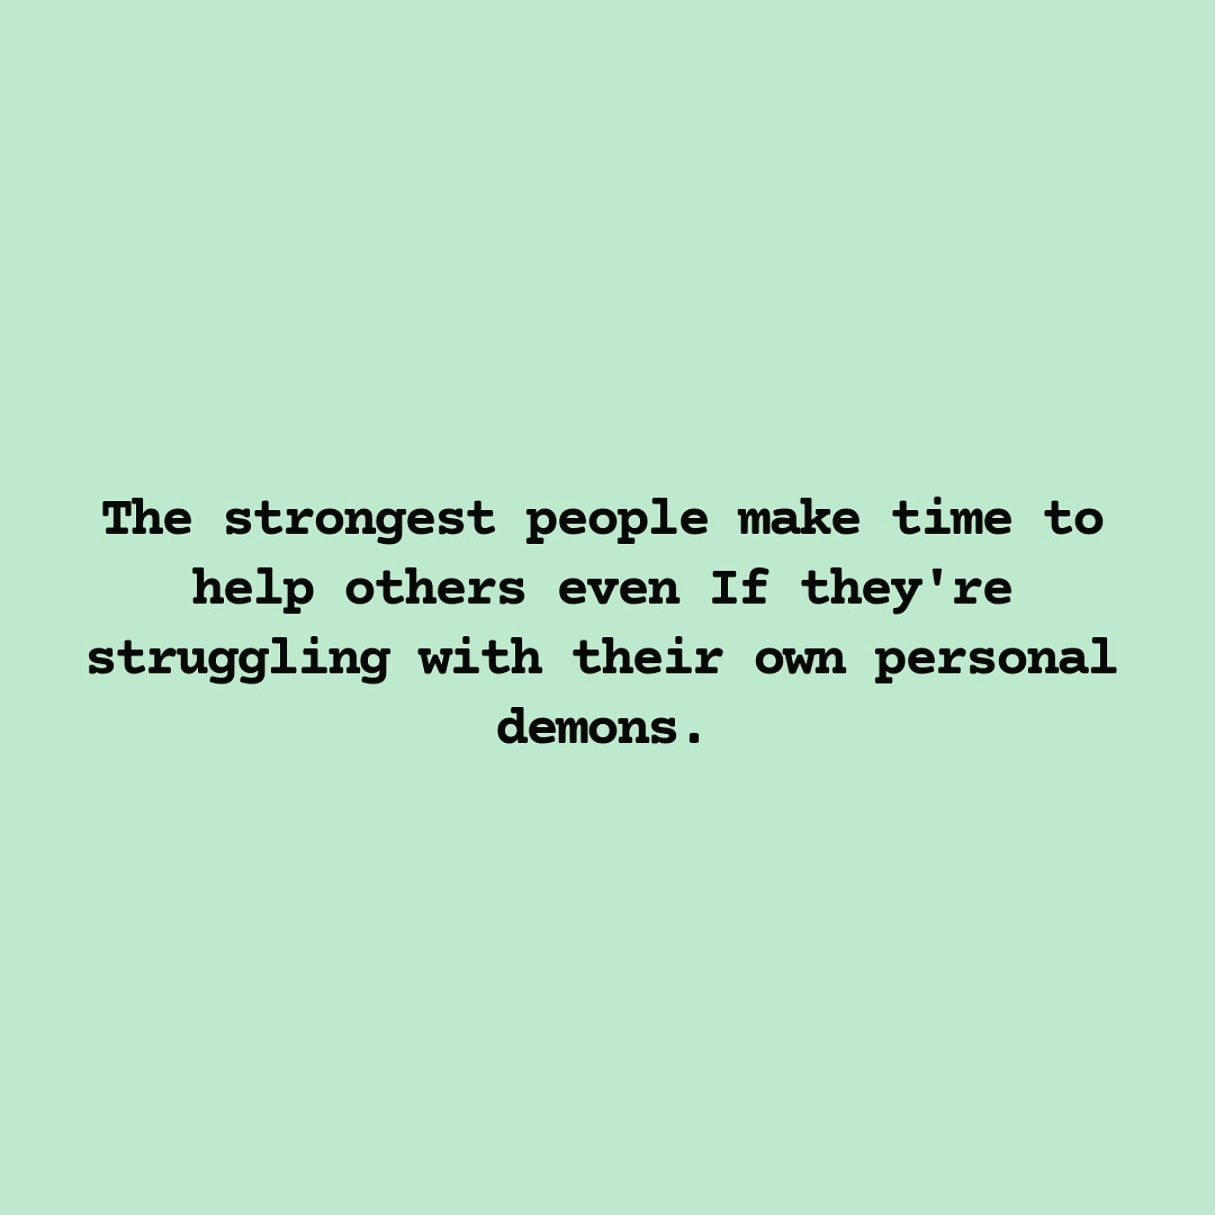 The strongest people make time to help others ecen if they're struggling with their own personal demons. (1080X1080)